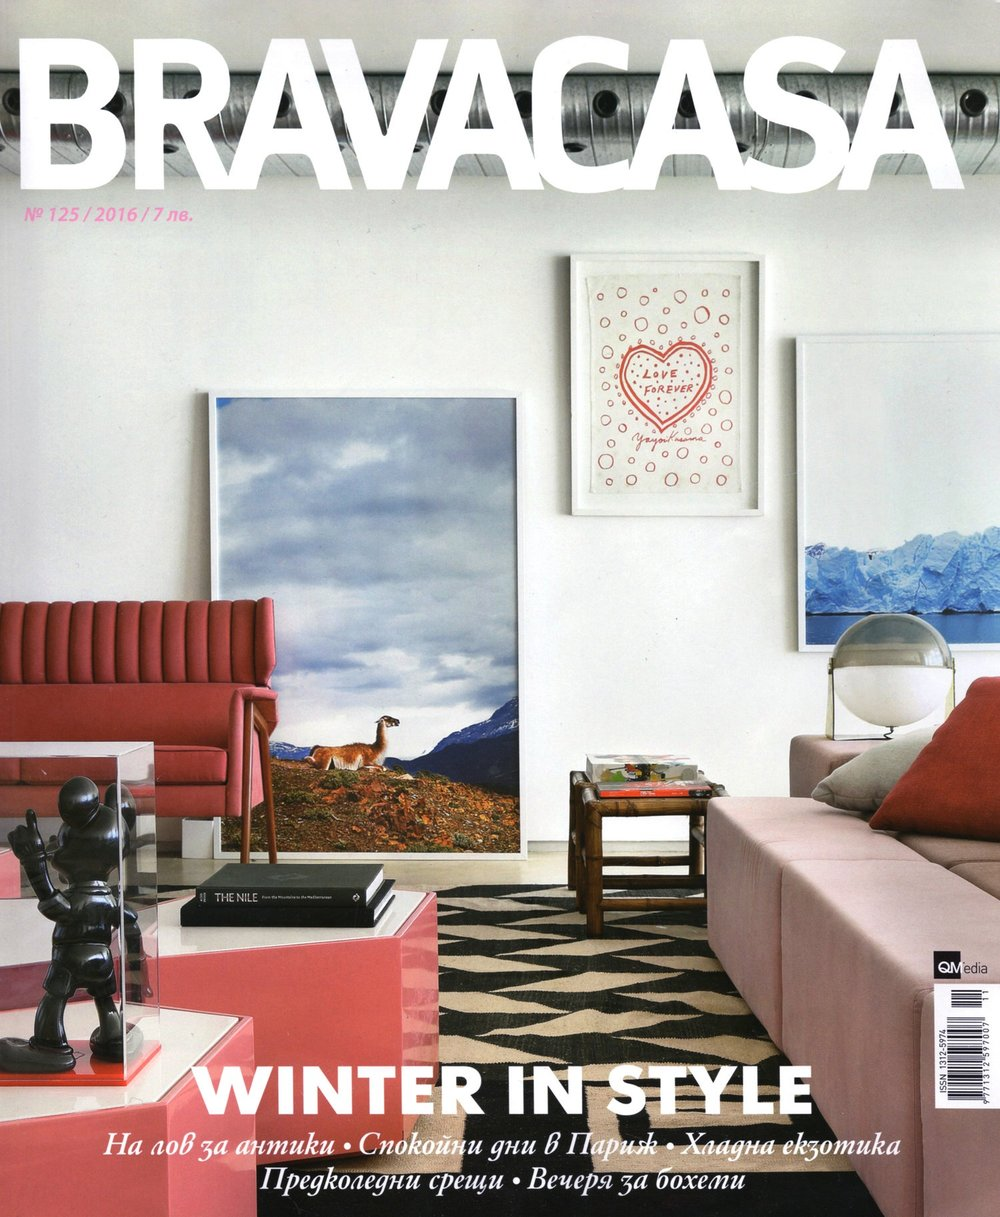 INTERVIEW ABOUT MY WORK AND STUDIO IN BRAVACASA